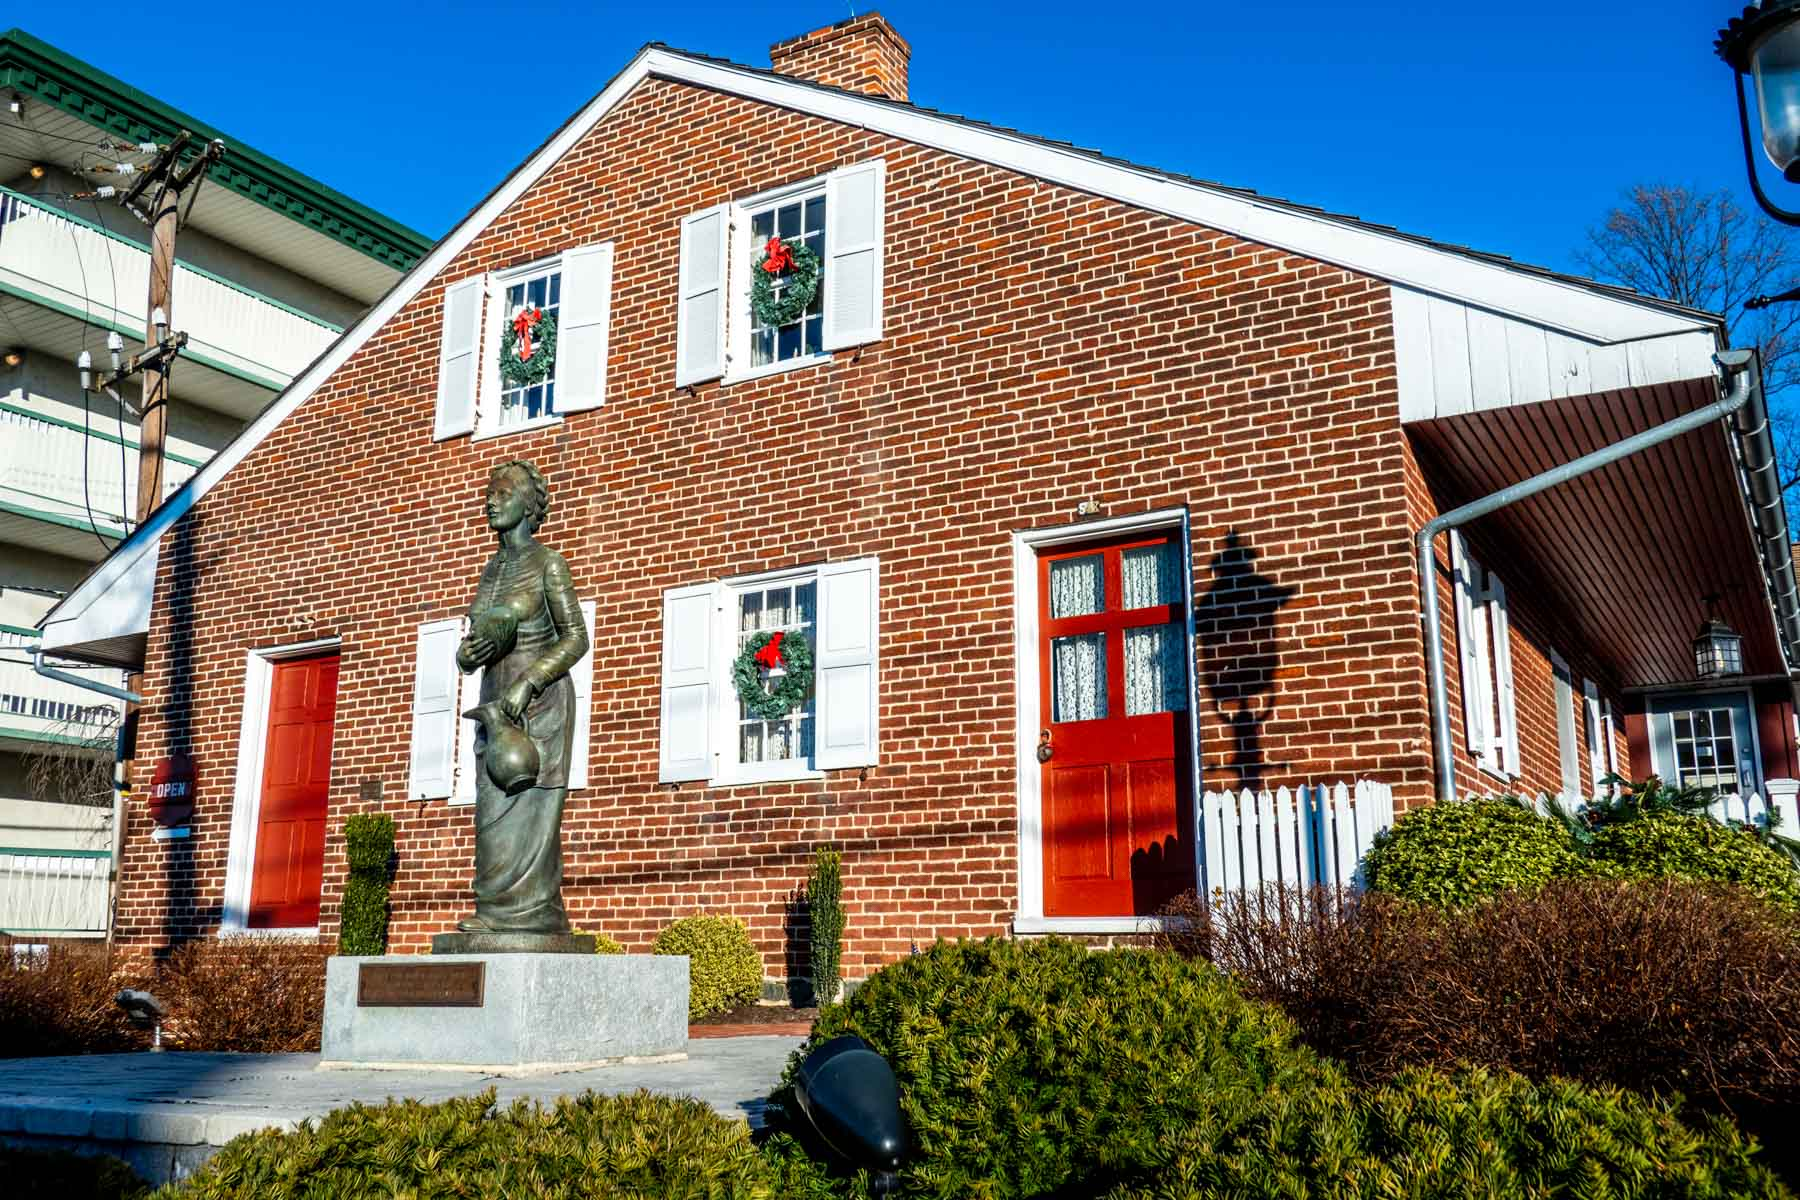 Brick house with a statue of Jennie Wade in front